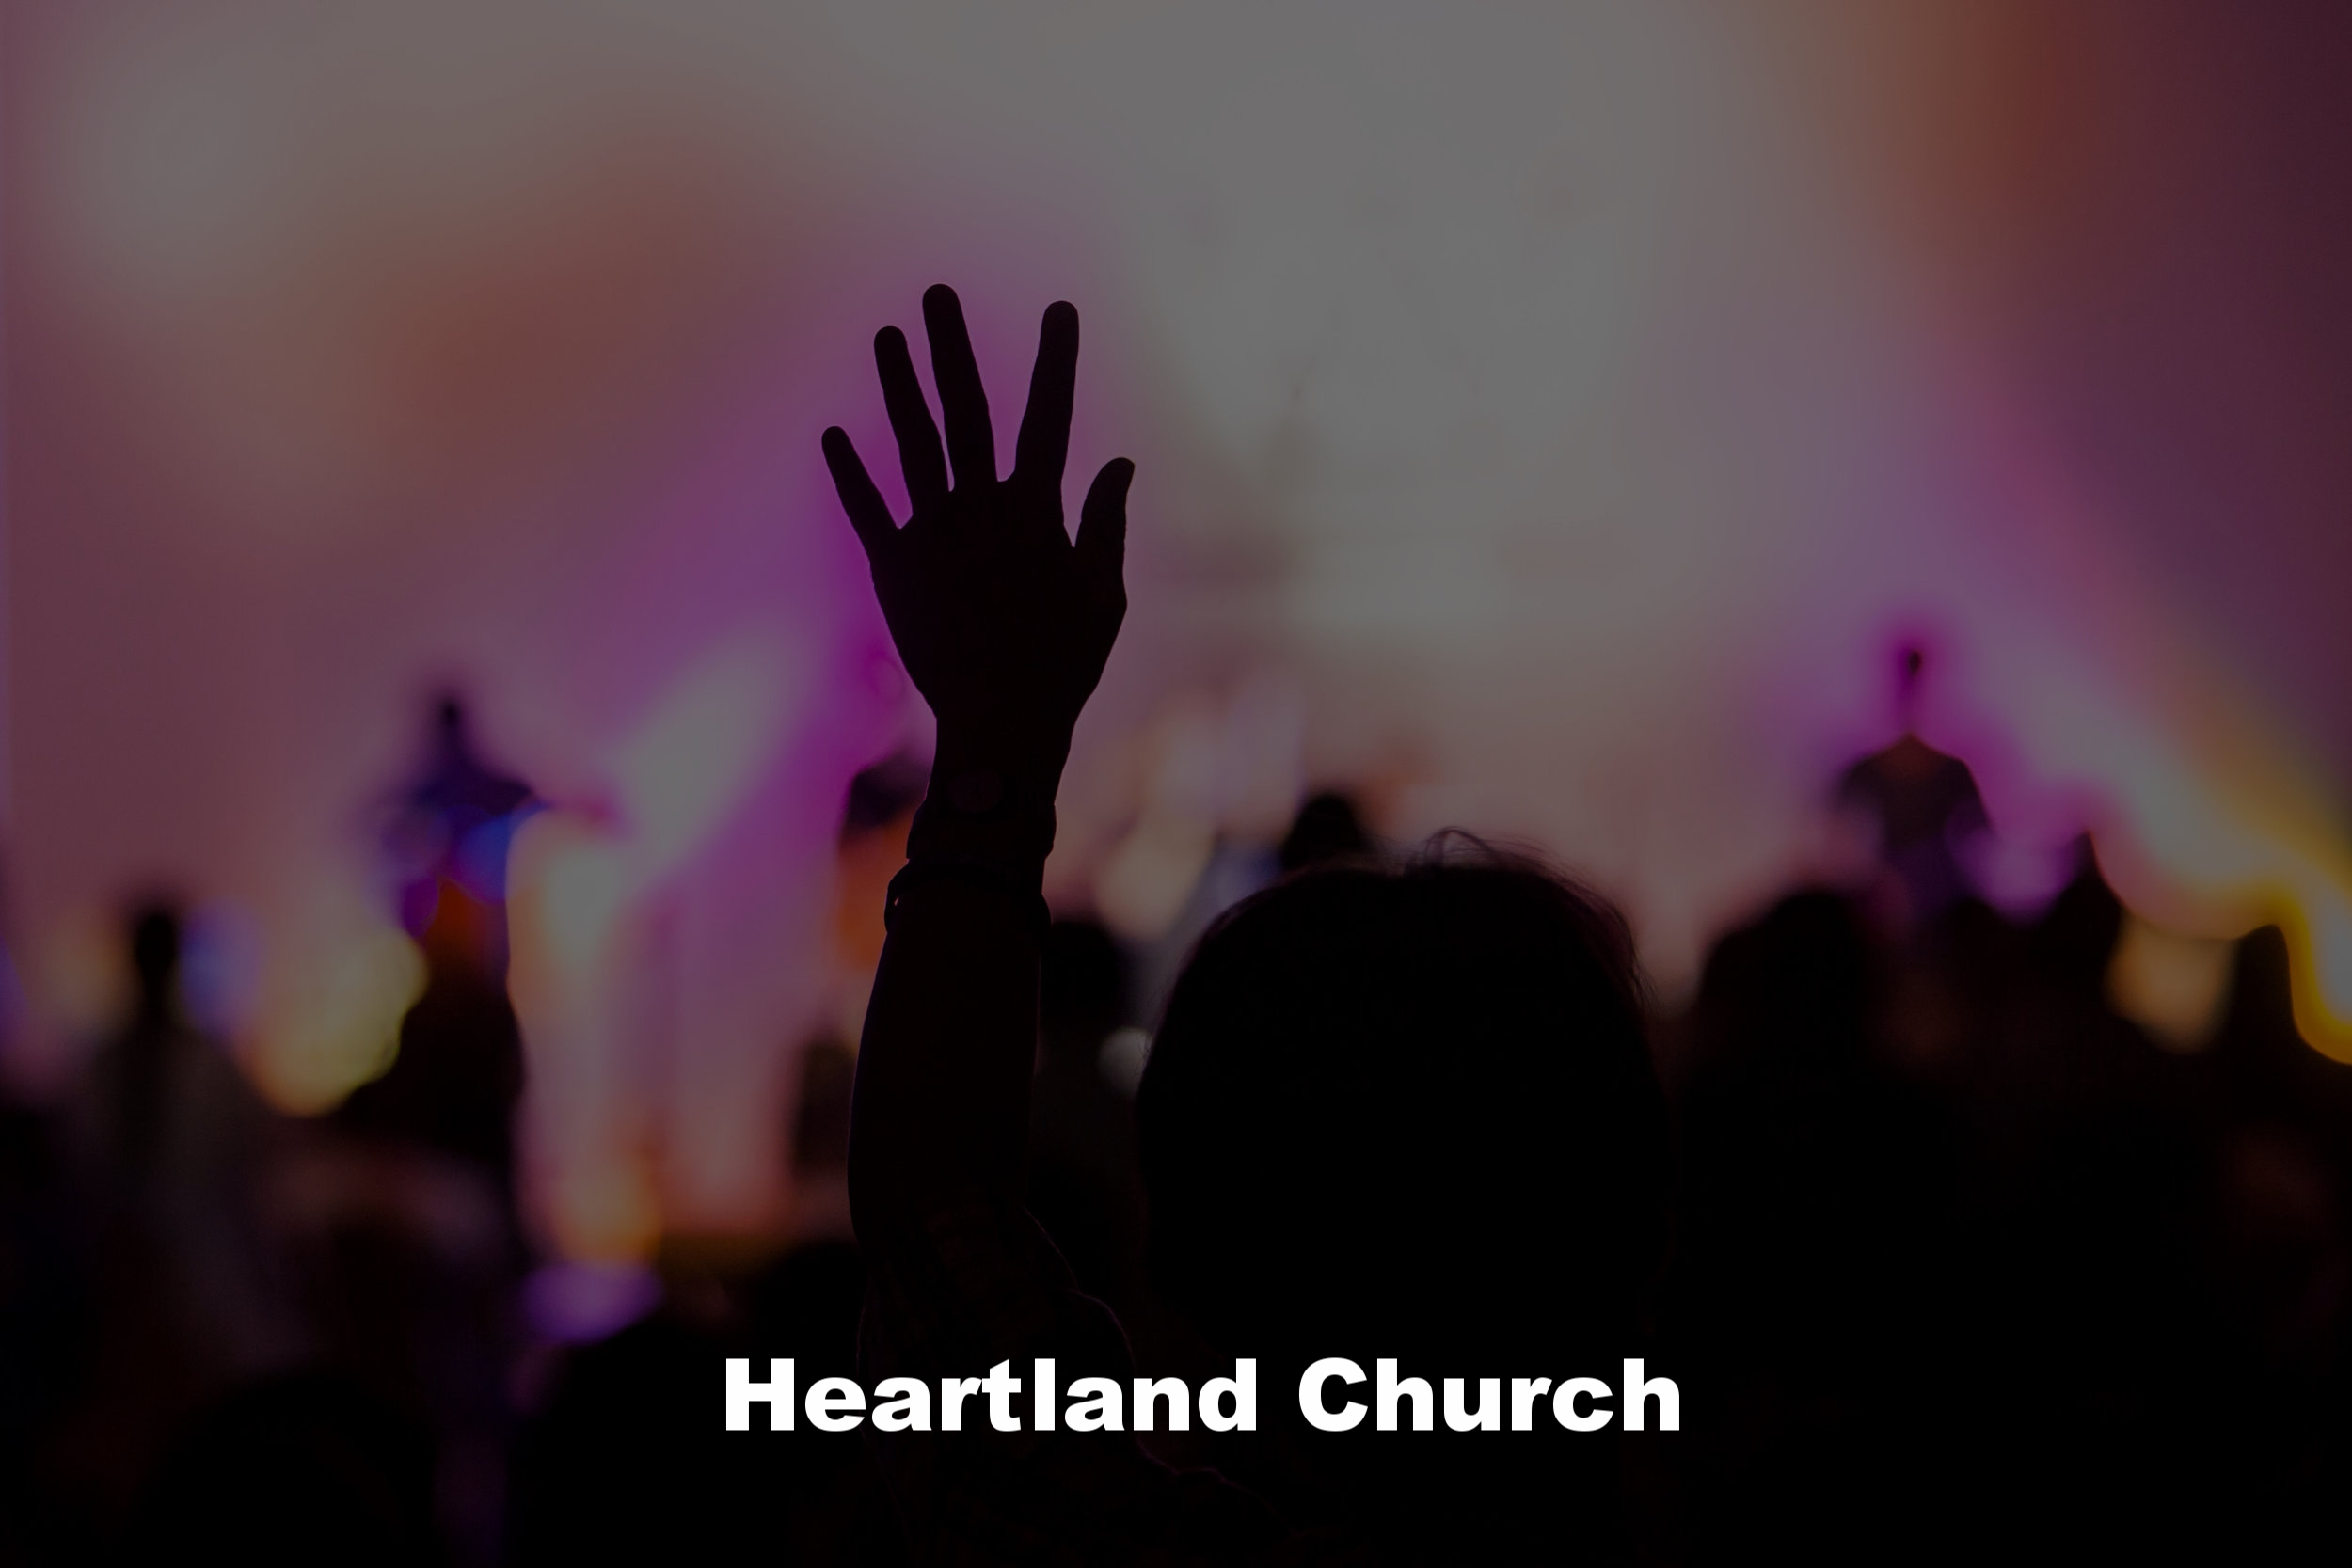 Copy of Heartland Church